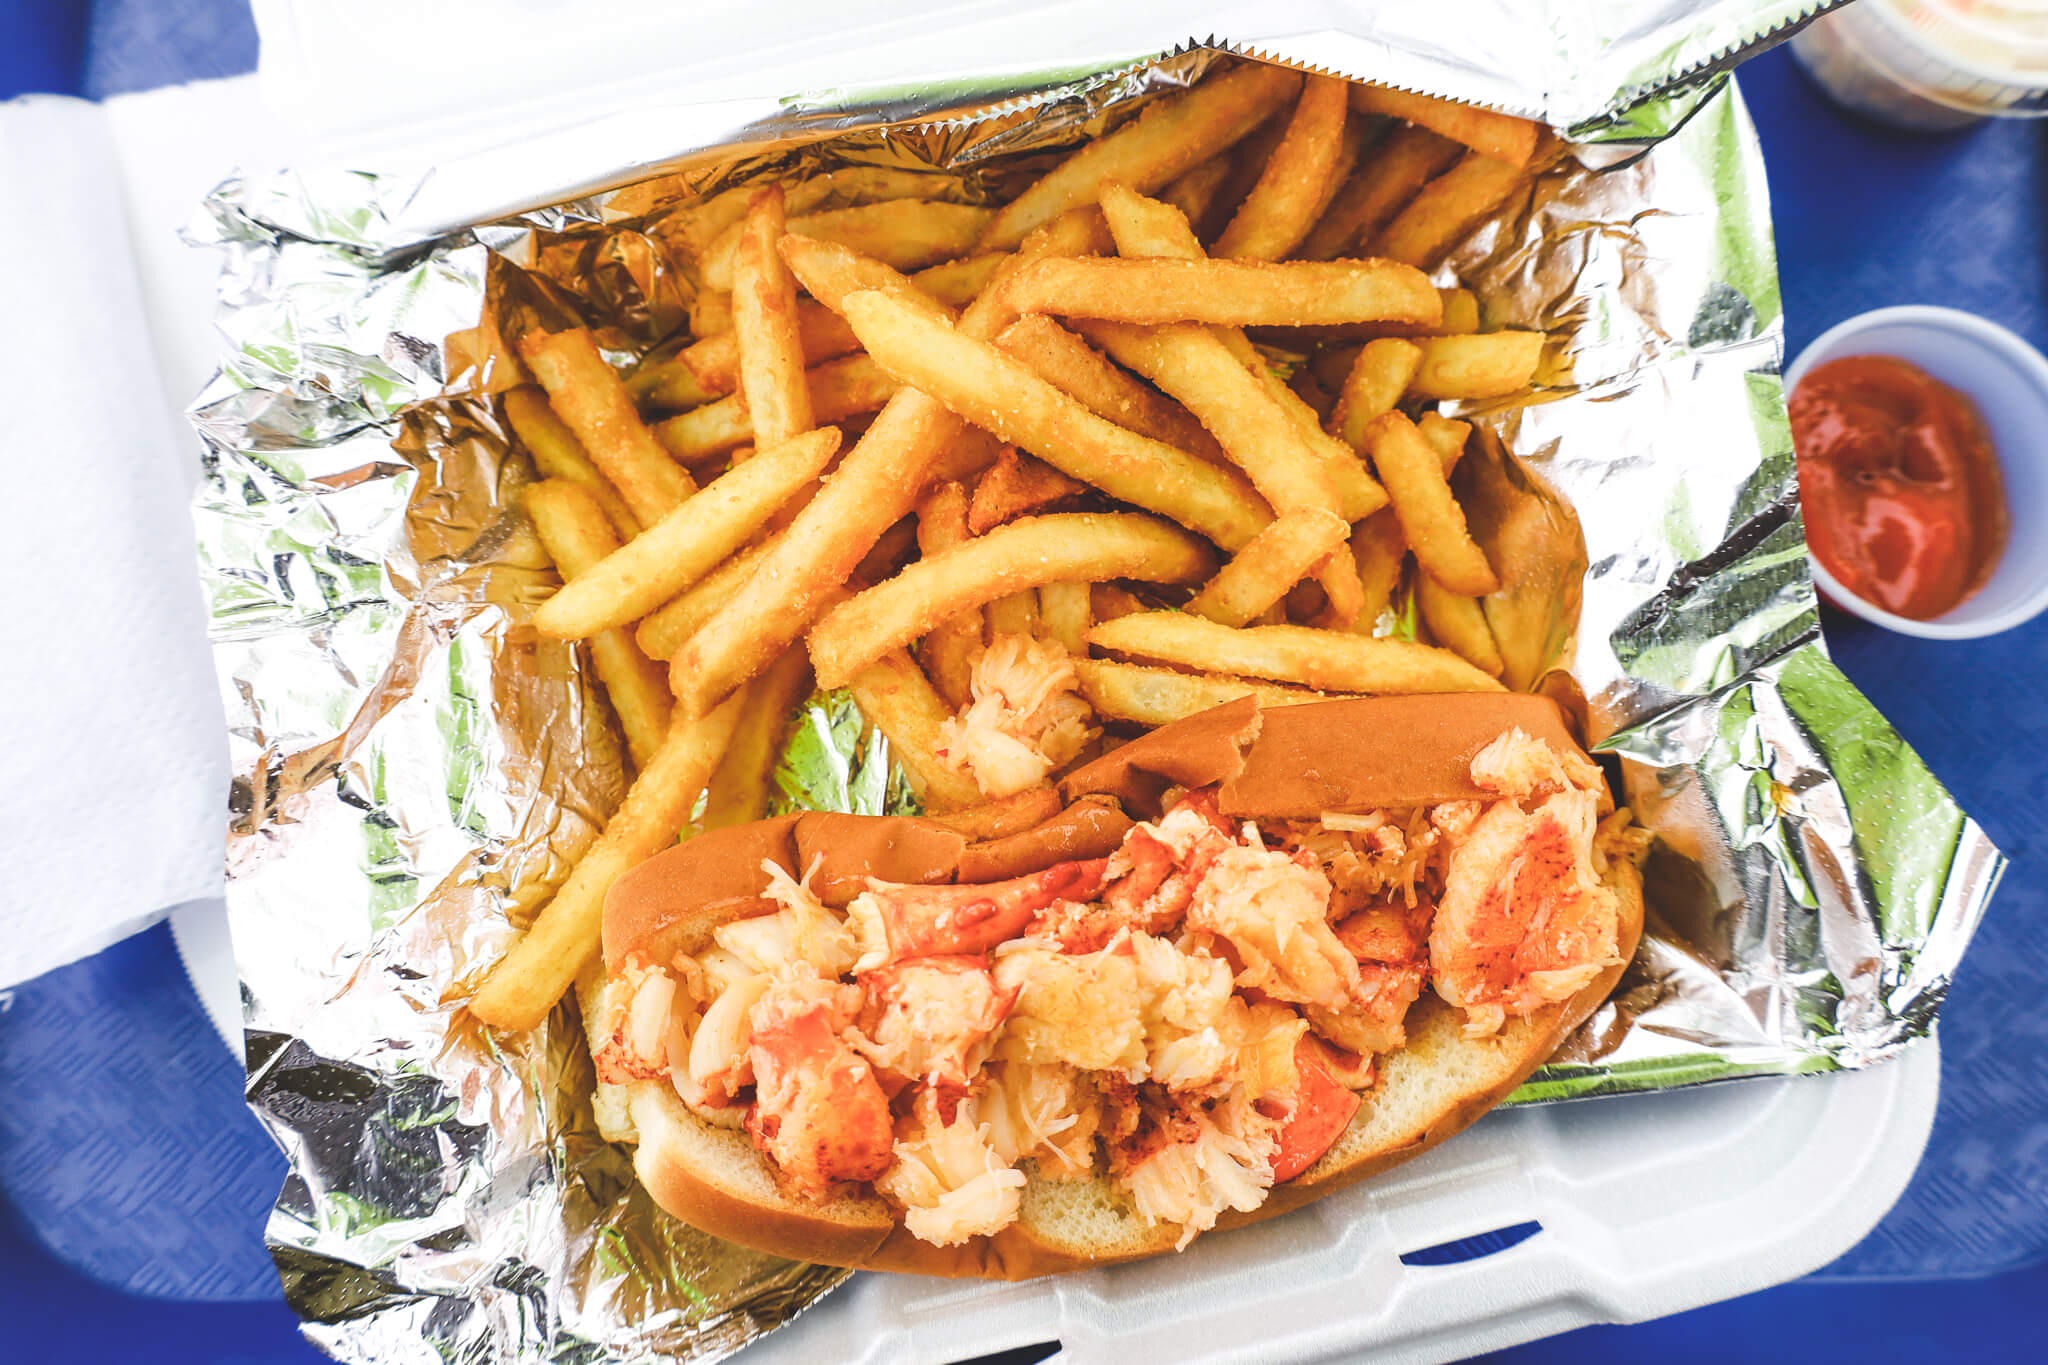 A lobster roll served with crispy french fries.